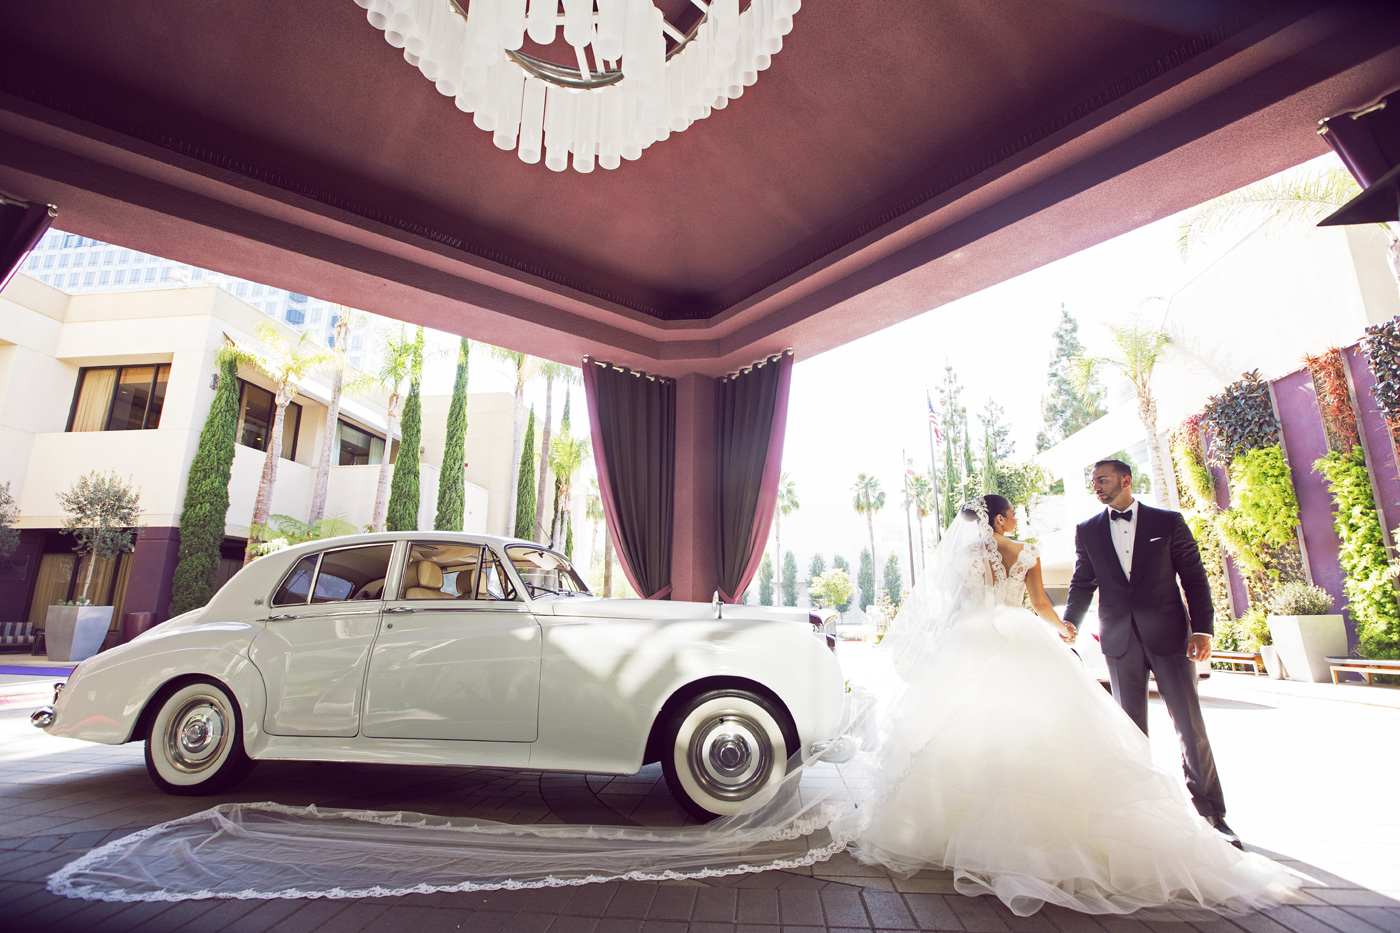 125DukePhotography_DukeImages_weddings_losangeles.jpg